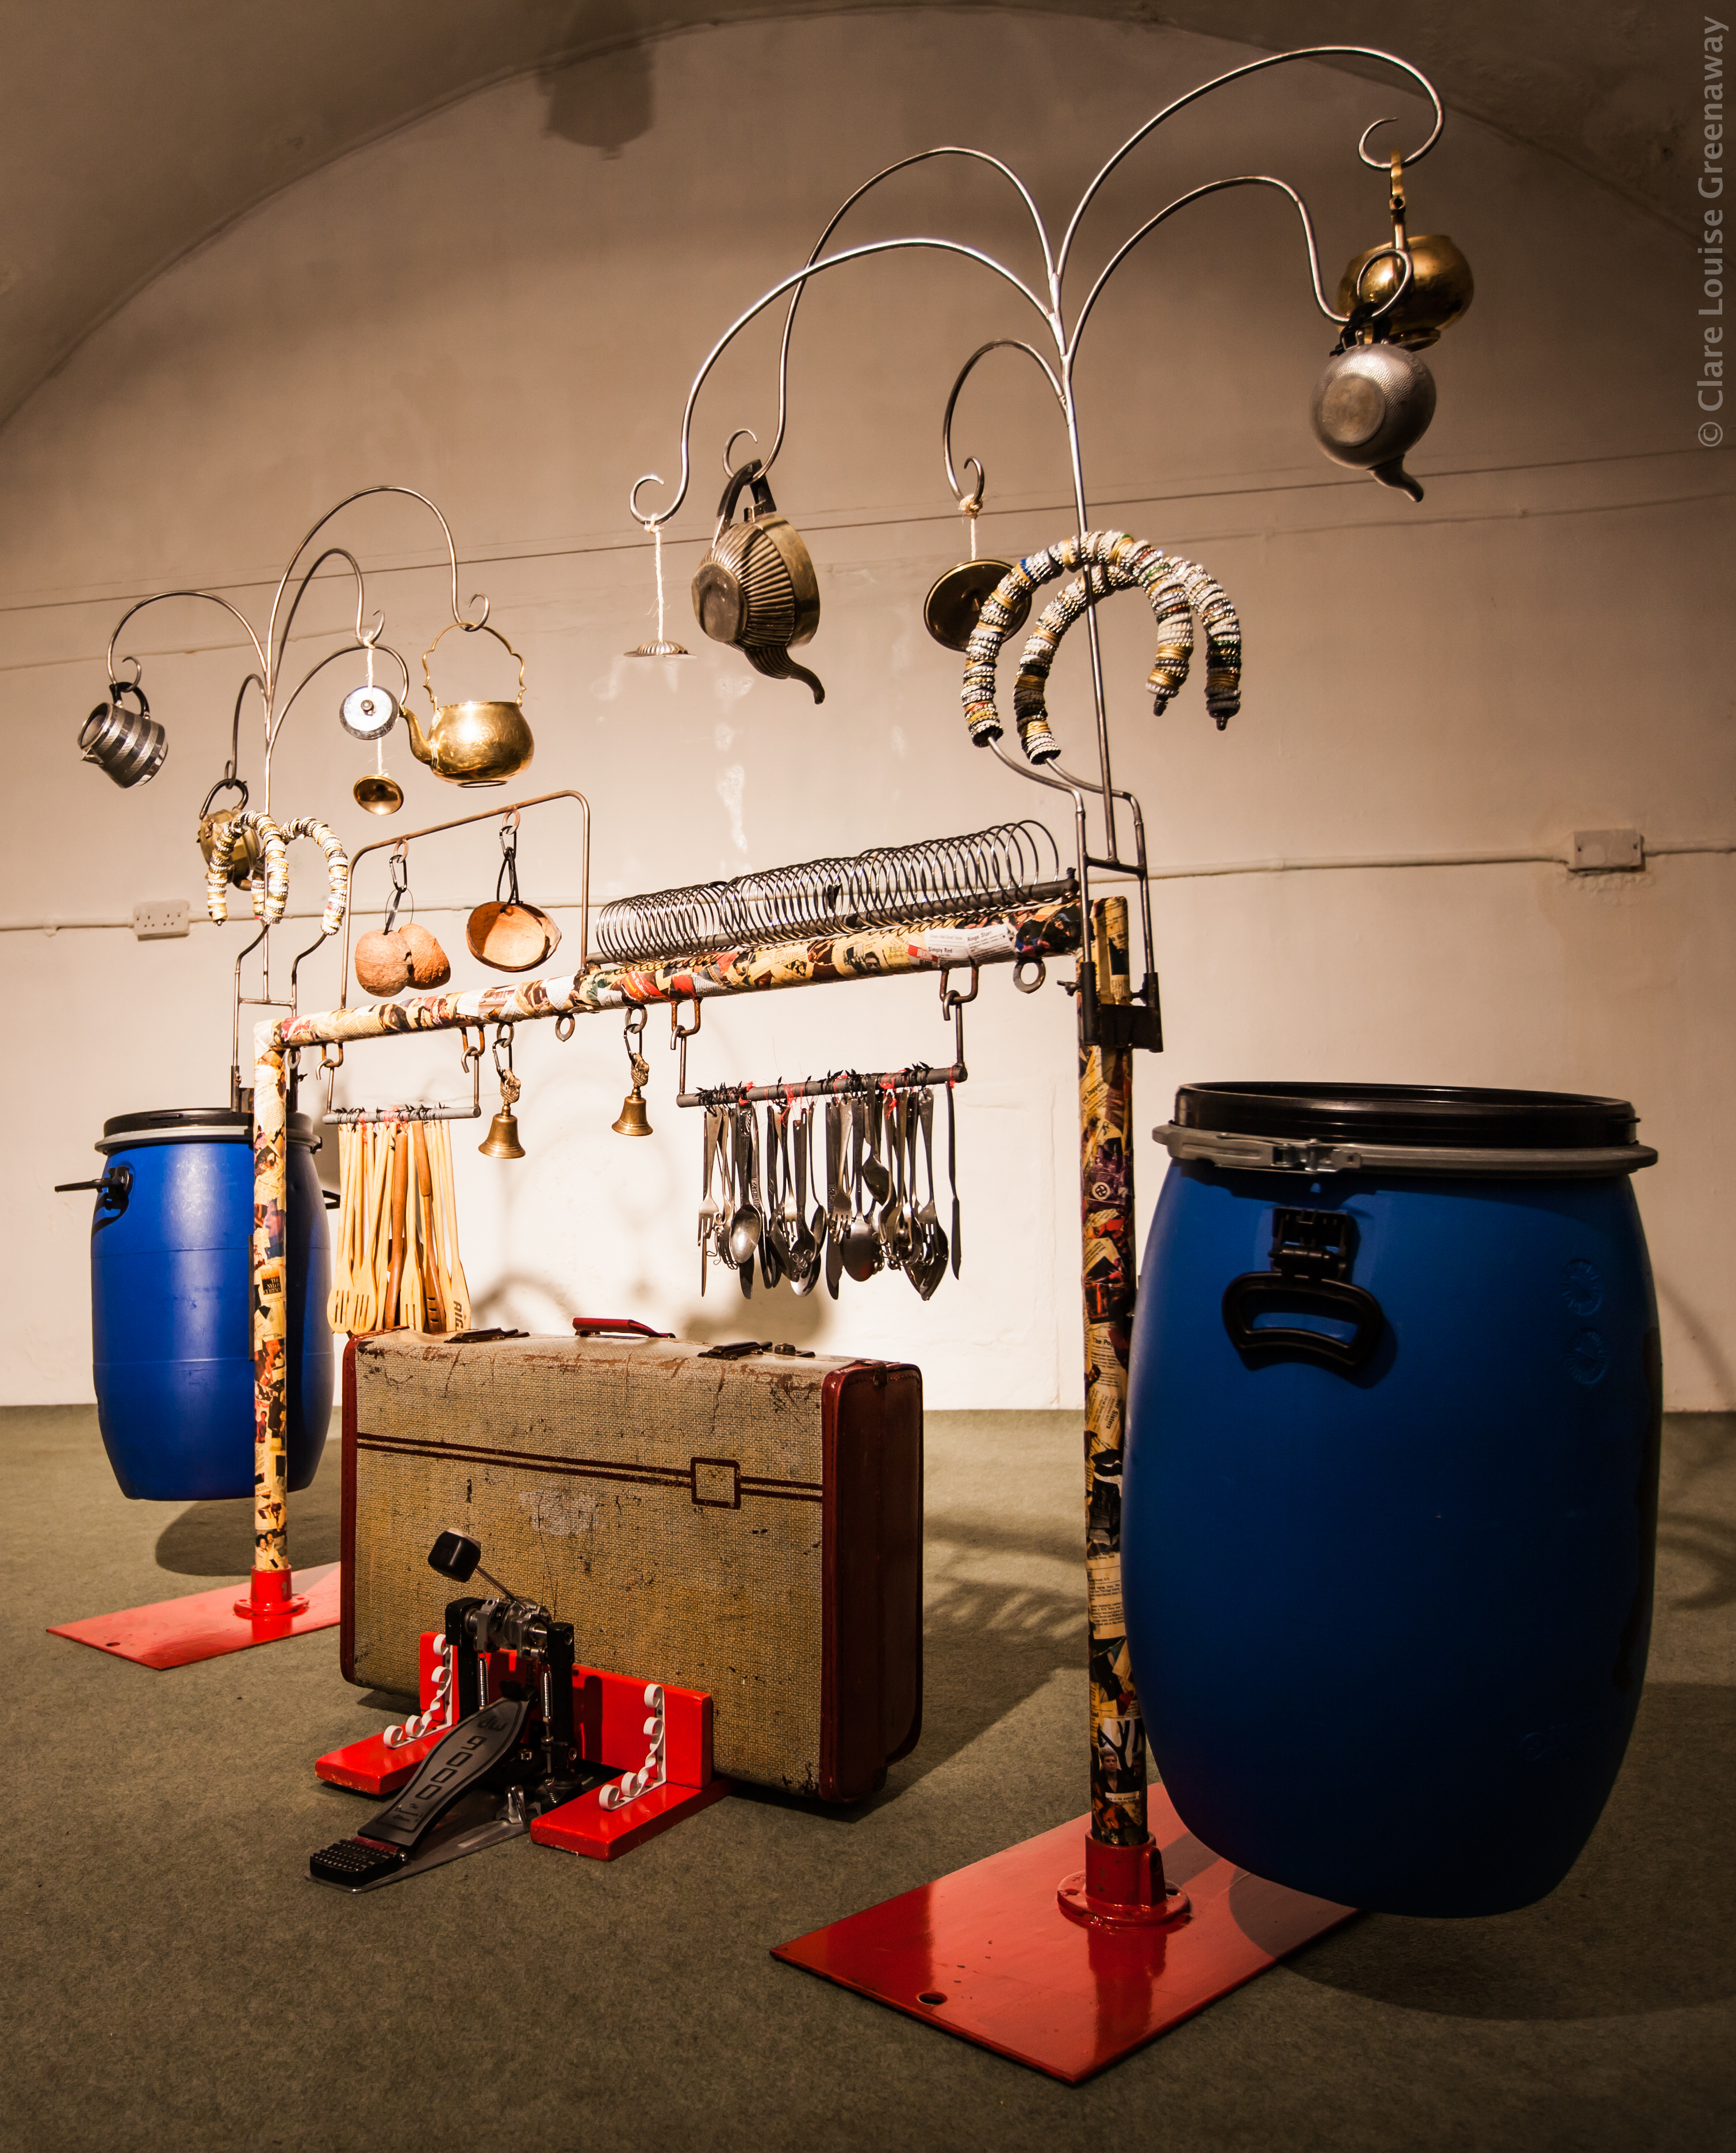 Rhythm Rig - The Rhythm Rig is complete with metal kettles, bottle top, coconuts, cutlery, wooden spoons and two big drums - it makes a huge range of sounds and so we find that this is where most of the grooves happen!